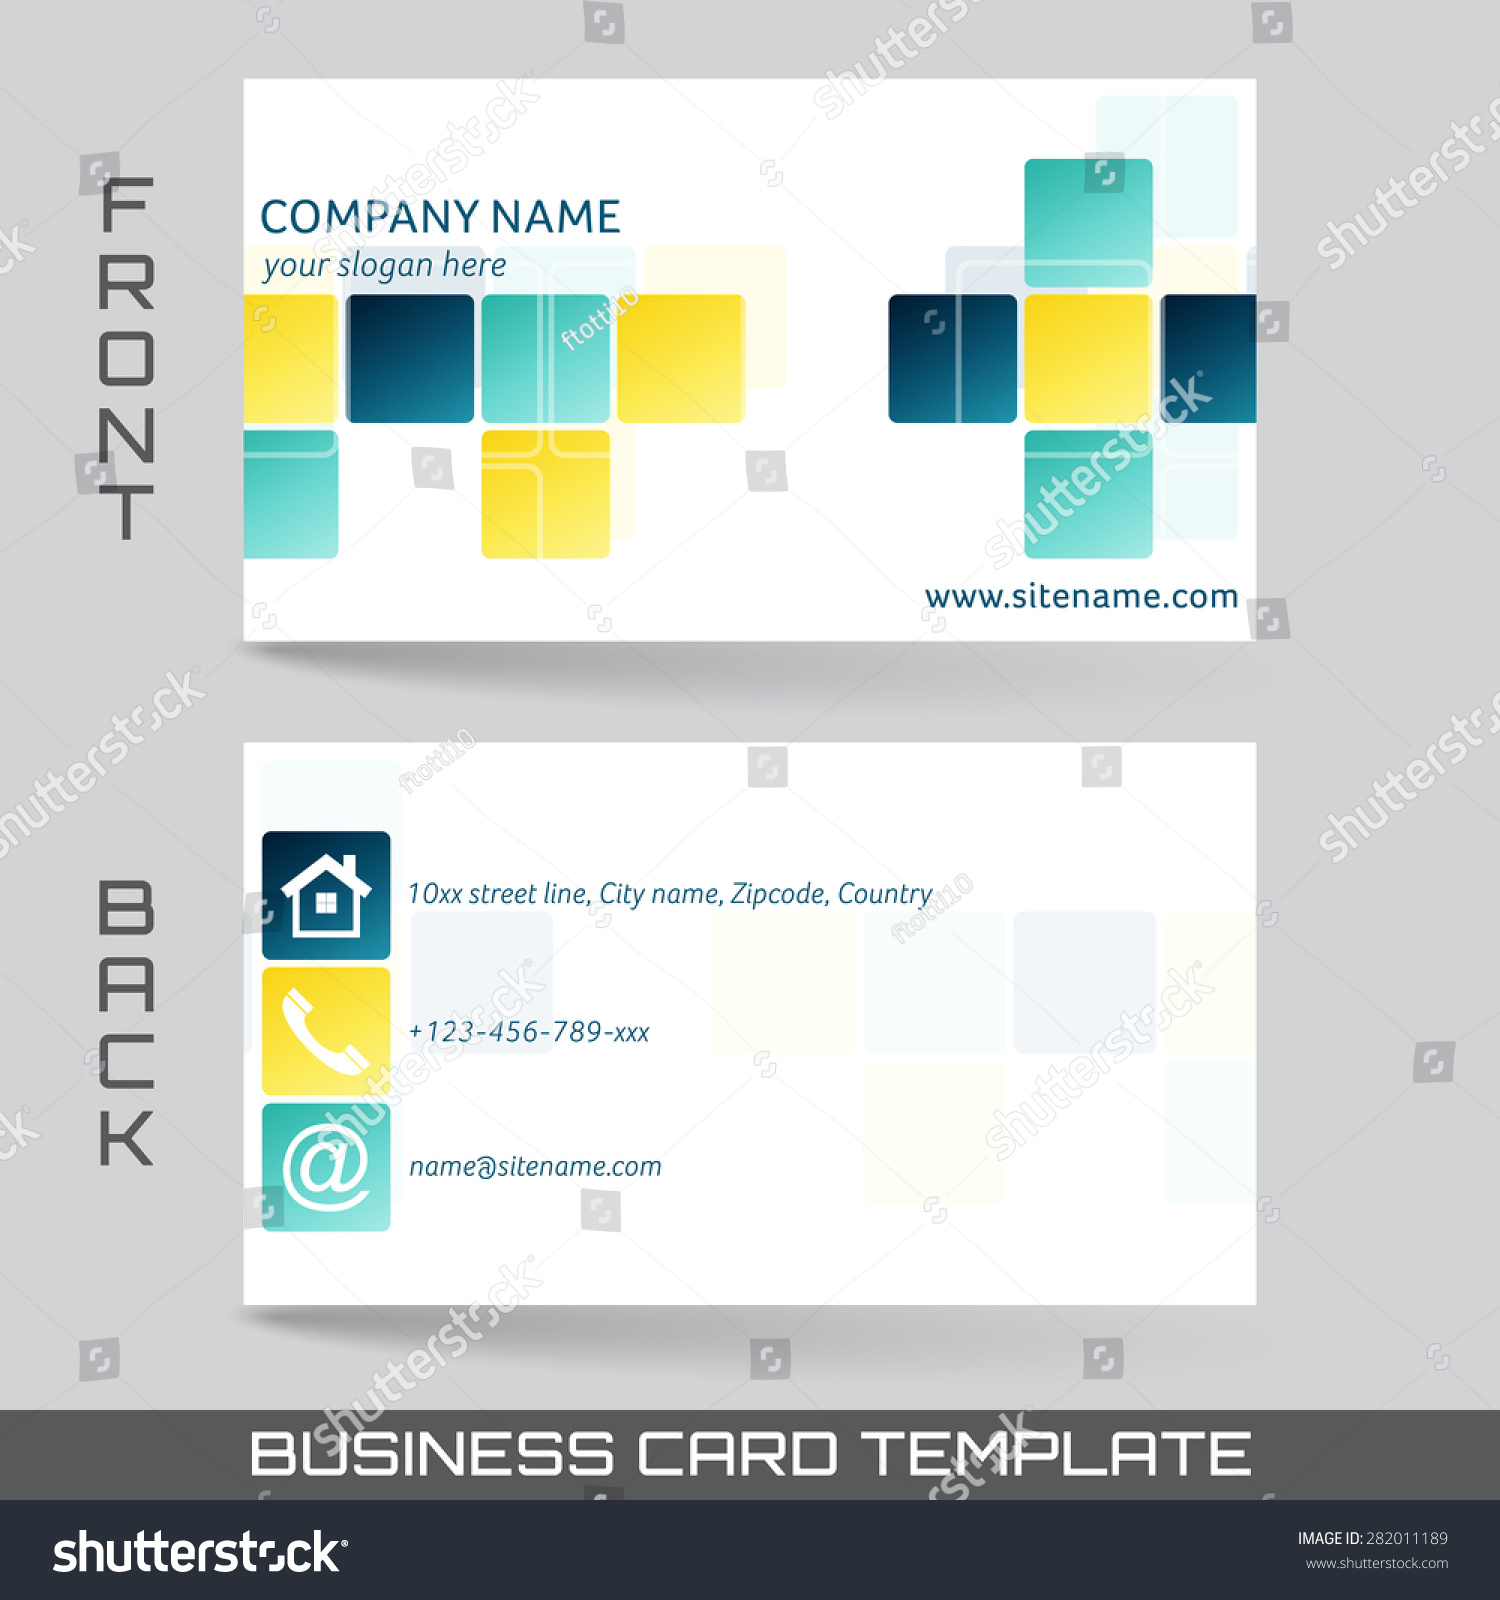 Business Card Template Visiting Card Set Stock Photo (Photo, Vector ...